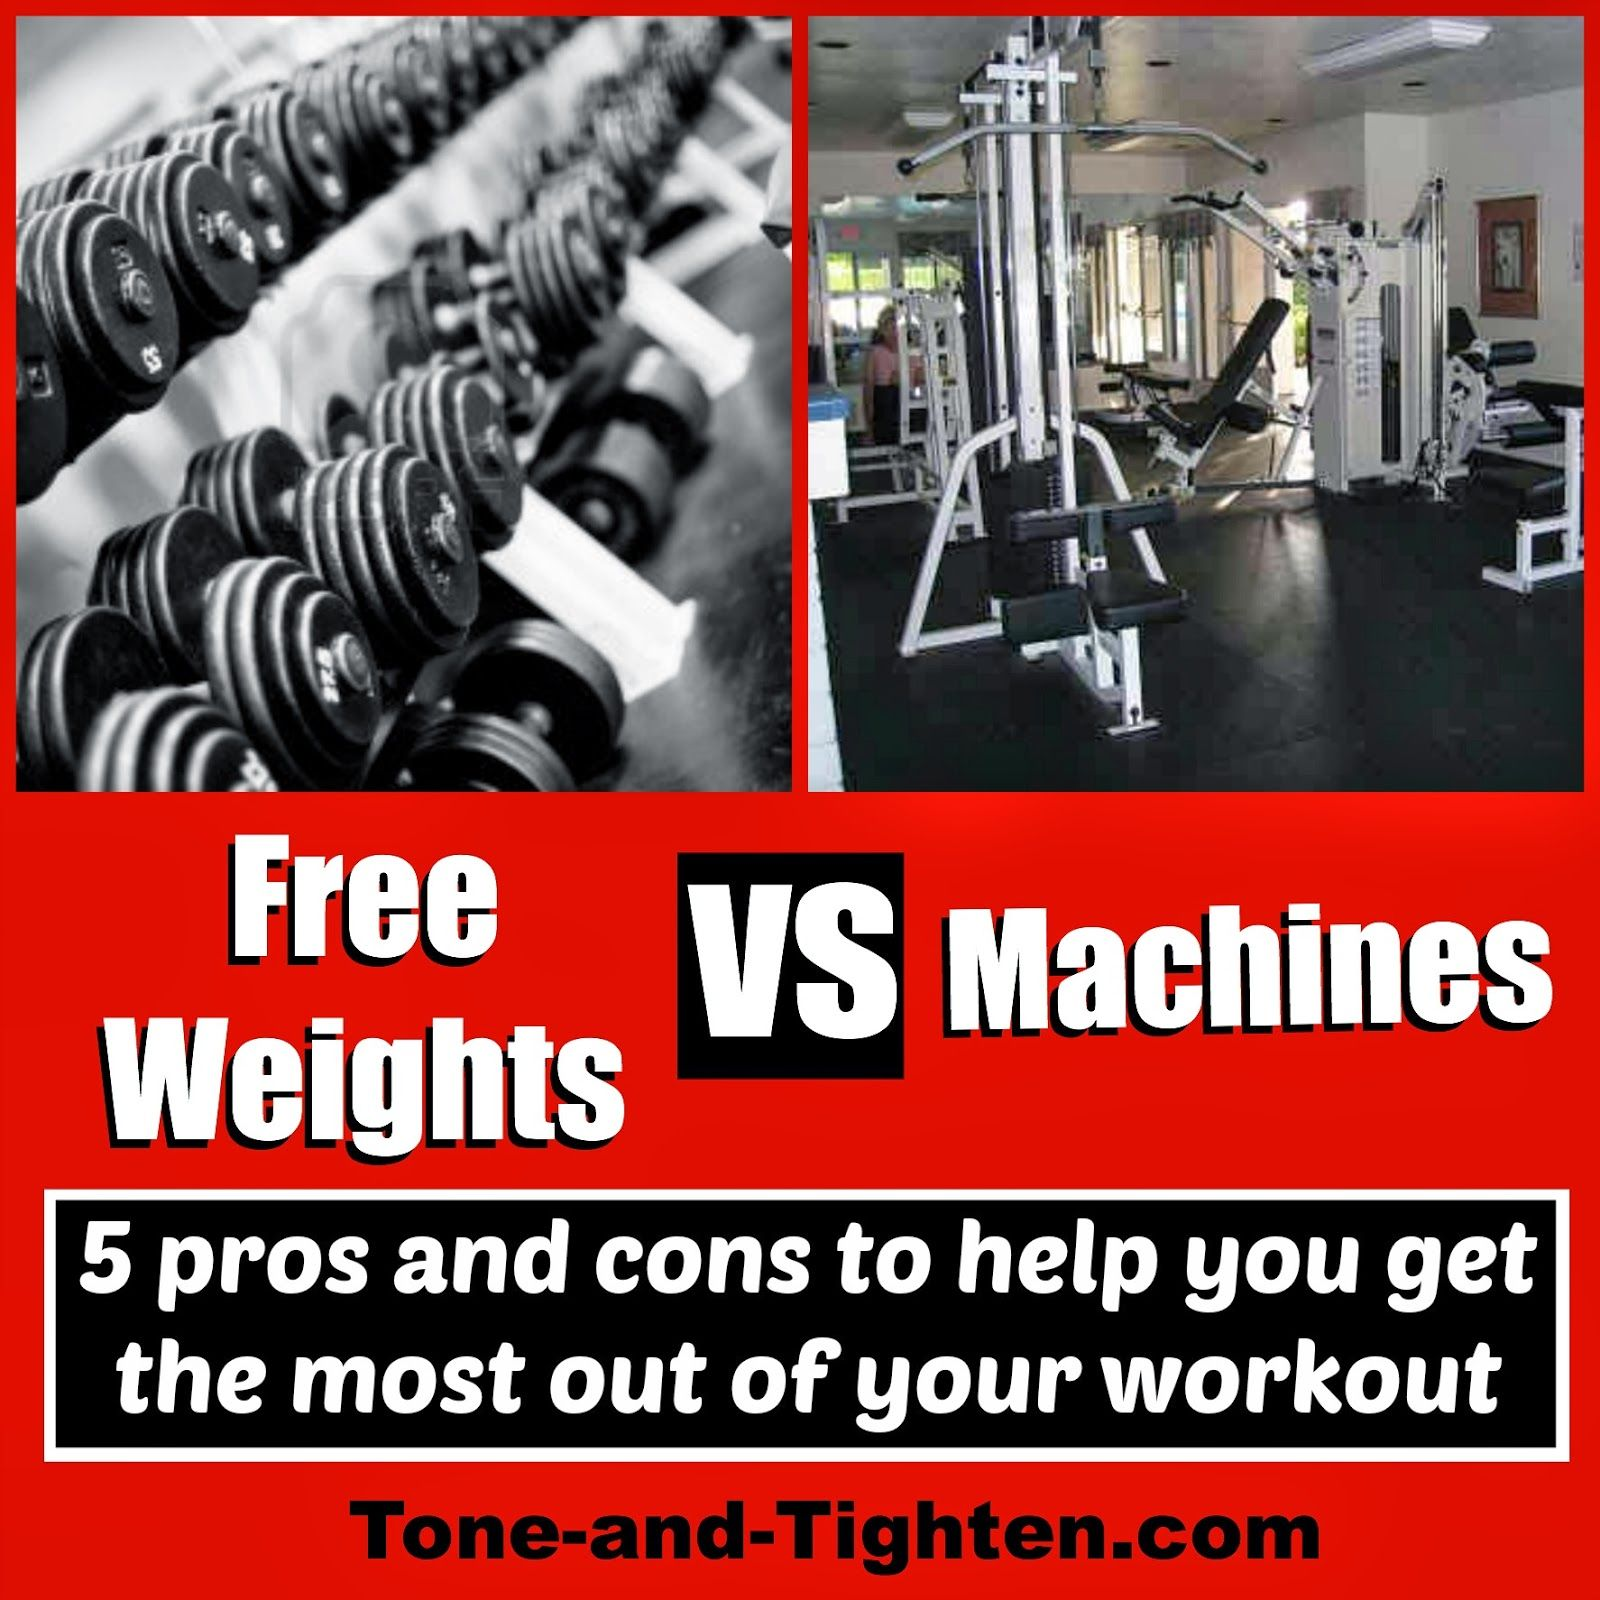 Free weights or machines? Get some solid advice on which one you should be using at Tone-and-Tighten.com